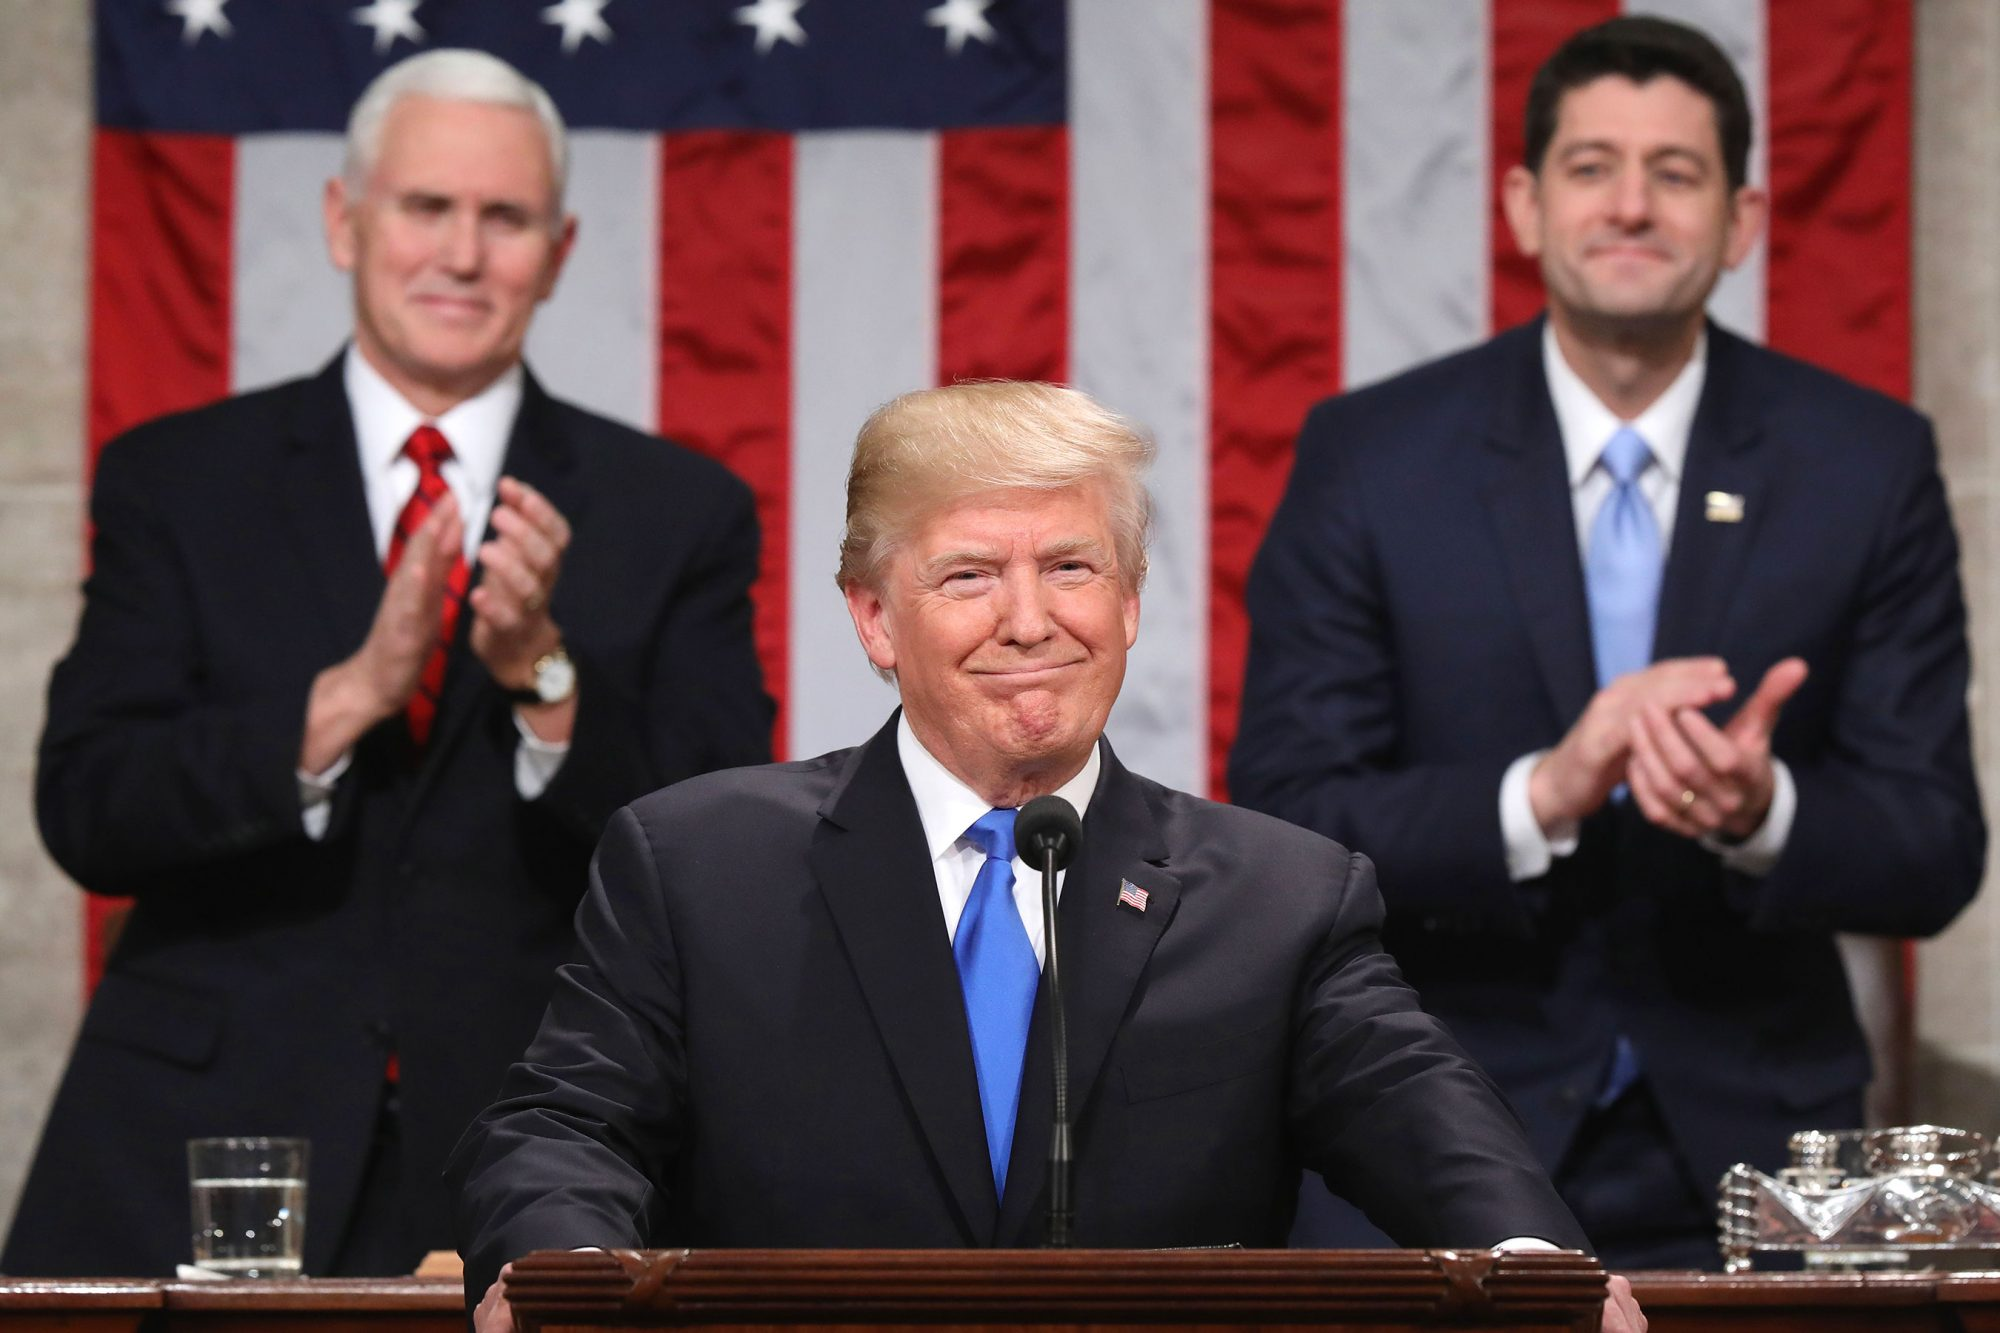 President Trump Delivers His First State Of The Union Address